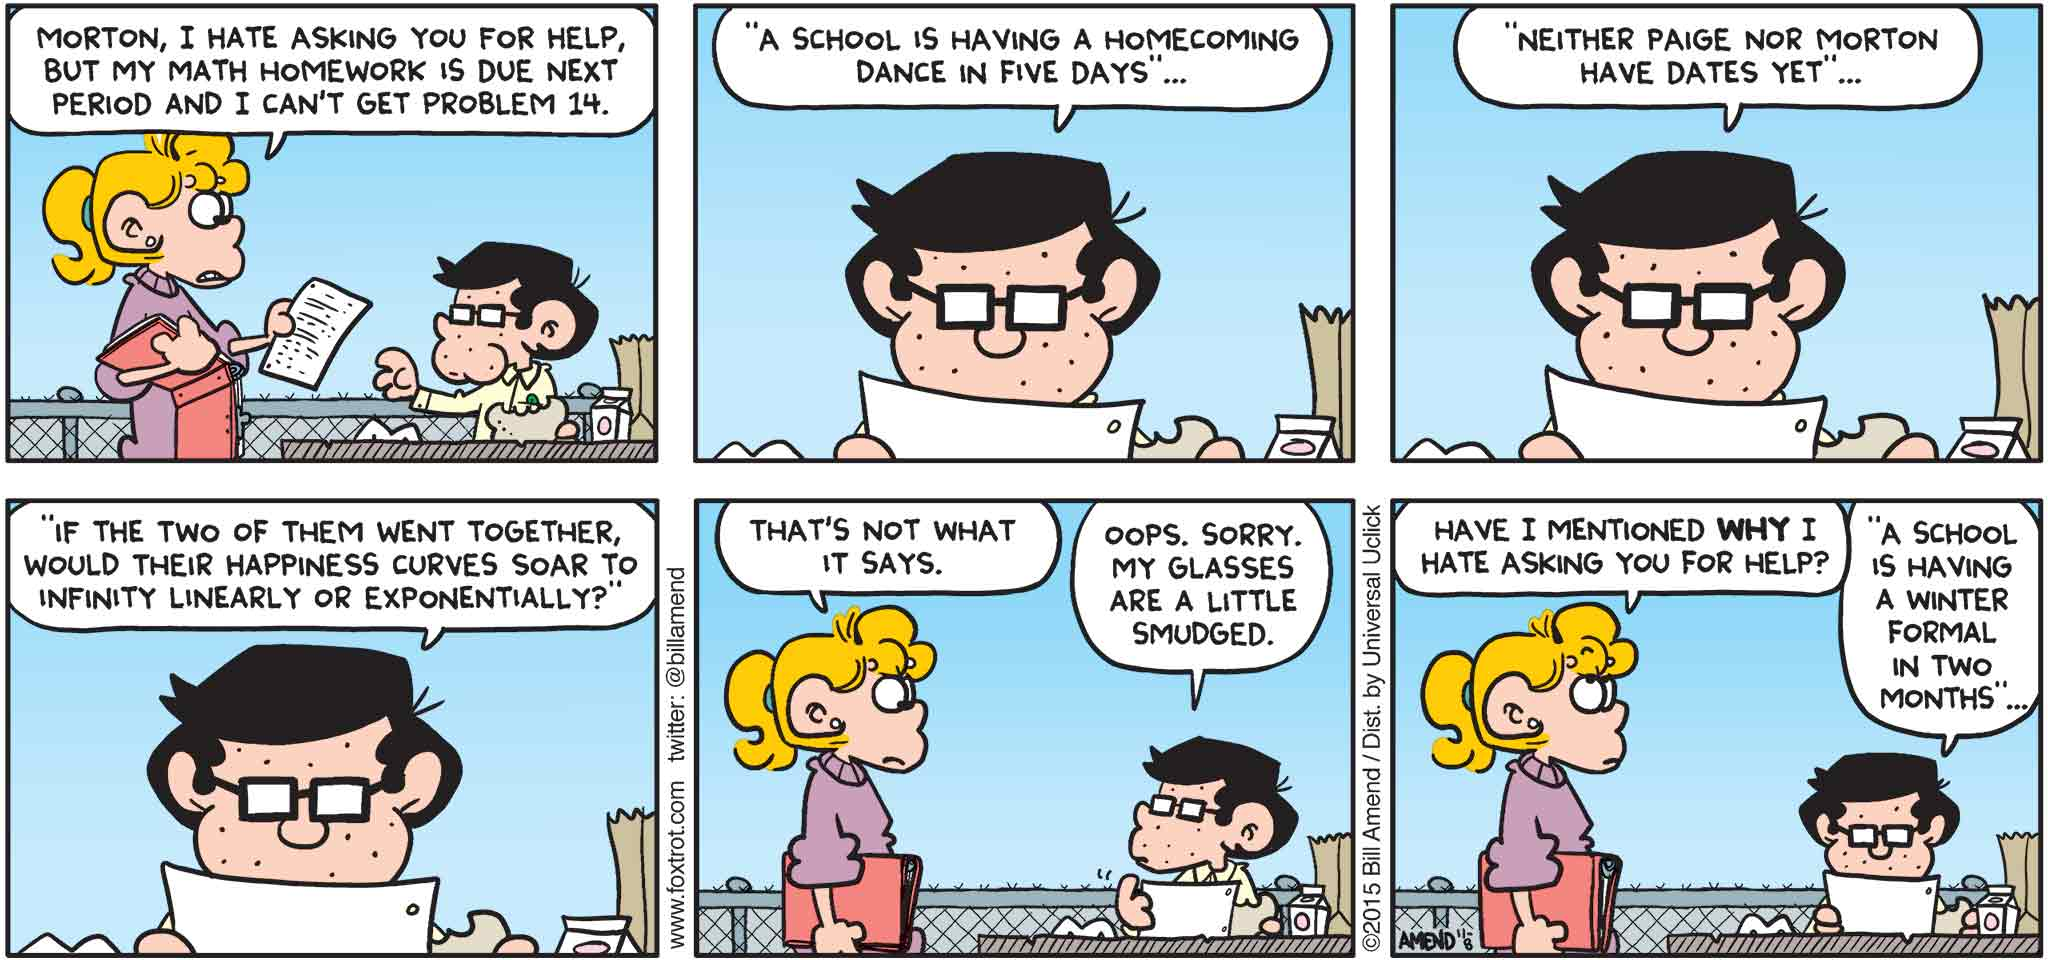 """FoxTrot by Bill Amend - """"Pain In the Math"""" published November 8, 2015 - Paige: Morton, I hate asking you for help, but my math homework is due next period and I can't get problem 14. Morton: """"A school is having a homecoming dance in five days"""" ... """"neither Paige nor Morton have dates yet"""" ... """"If the two of them went together, would their happiness curvers soar to infinity linearly or exponentially?"""" Paige: That's not what it says. Morton: Oops. Sorry. My glasses are a little smudged. Paige: Have I mentioned WHY I hate asking you for help? Morton: """"A school is having a winter formal in two months"""" ..."""